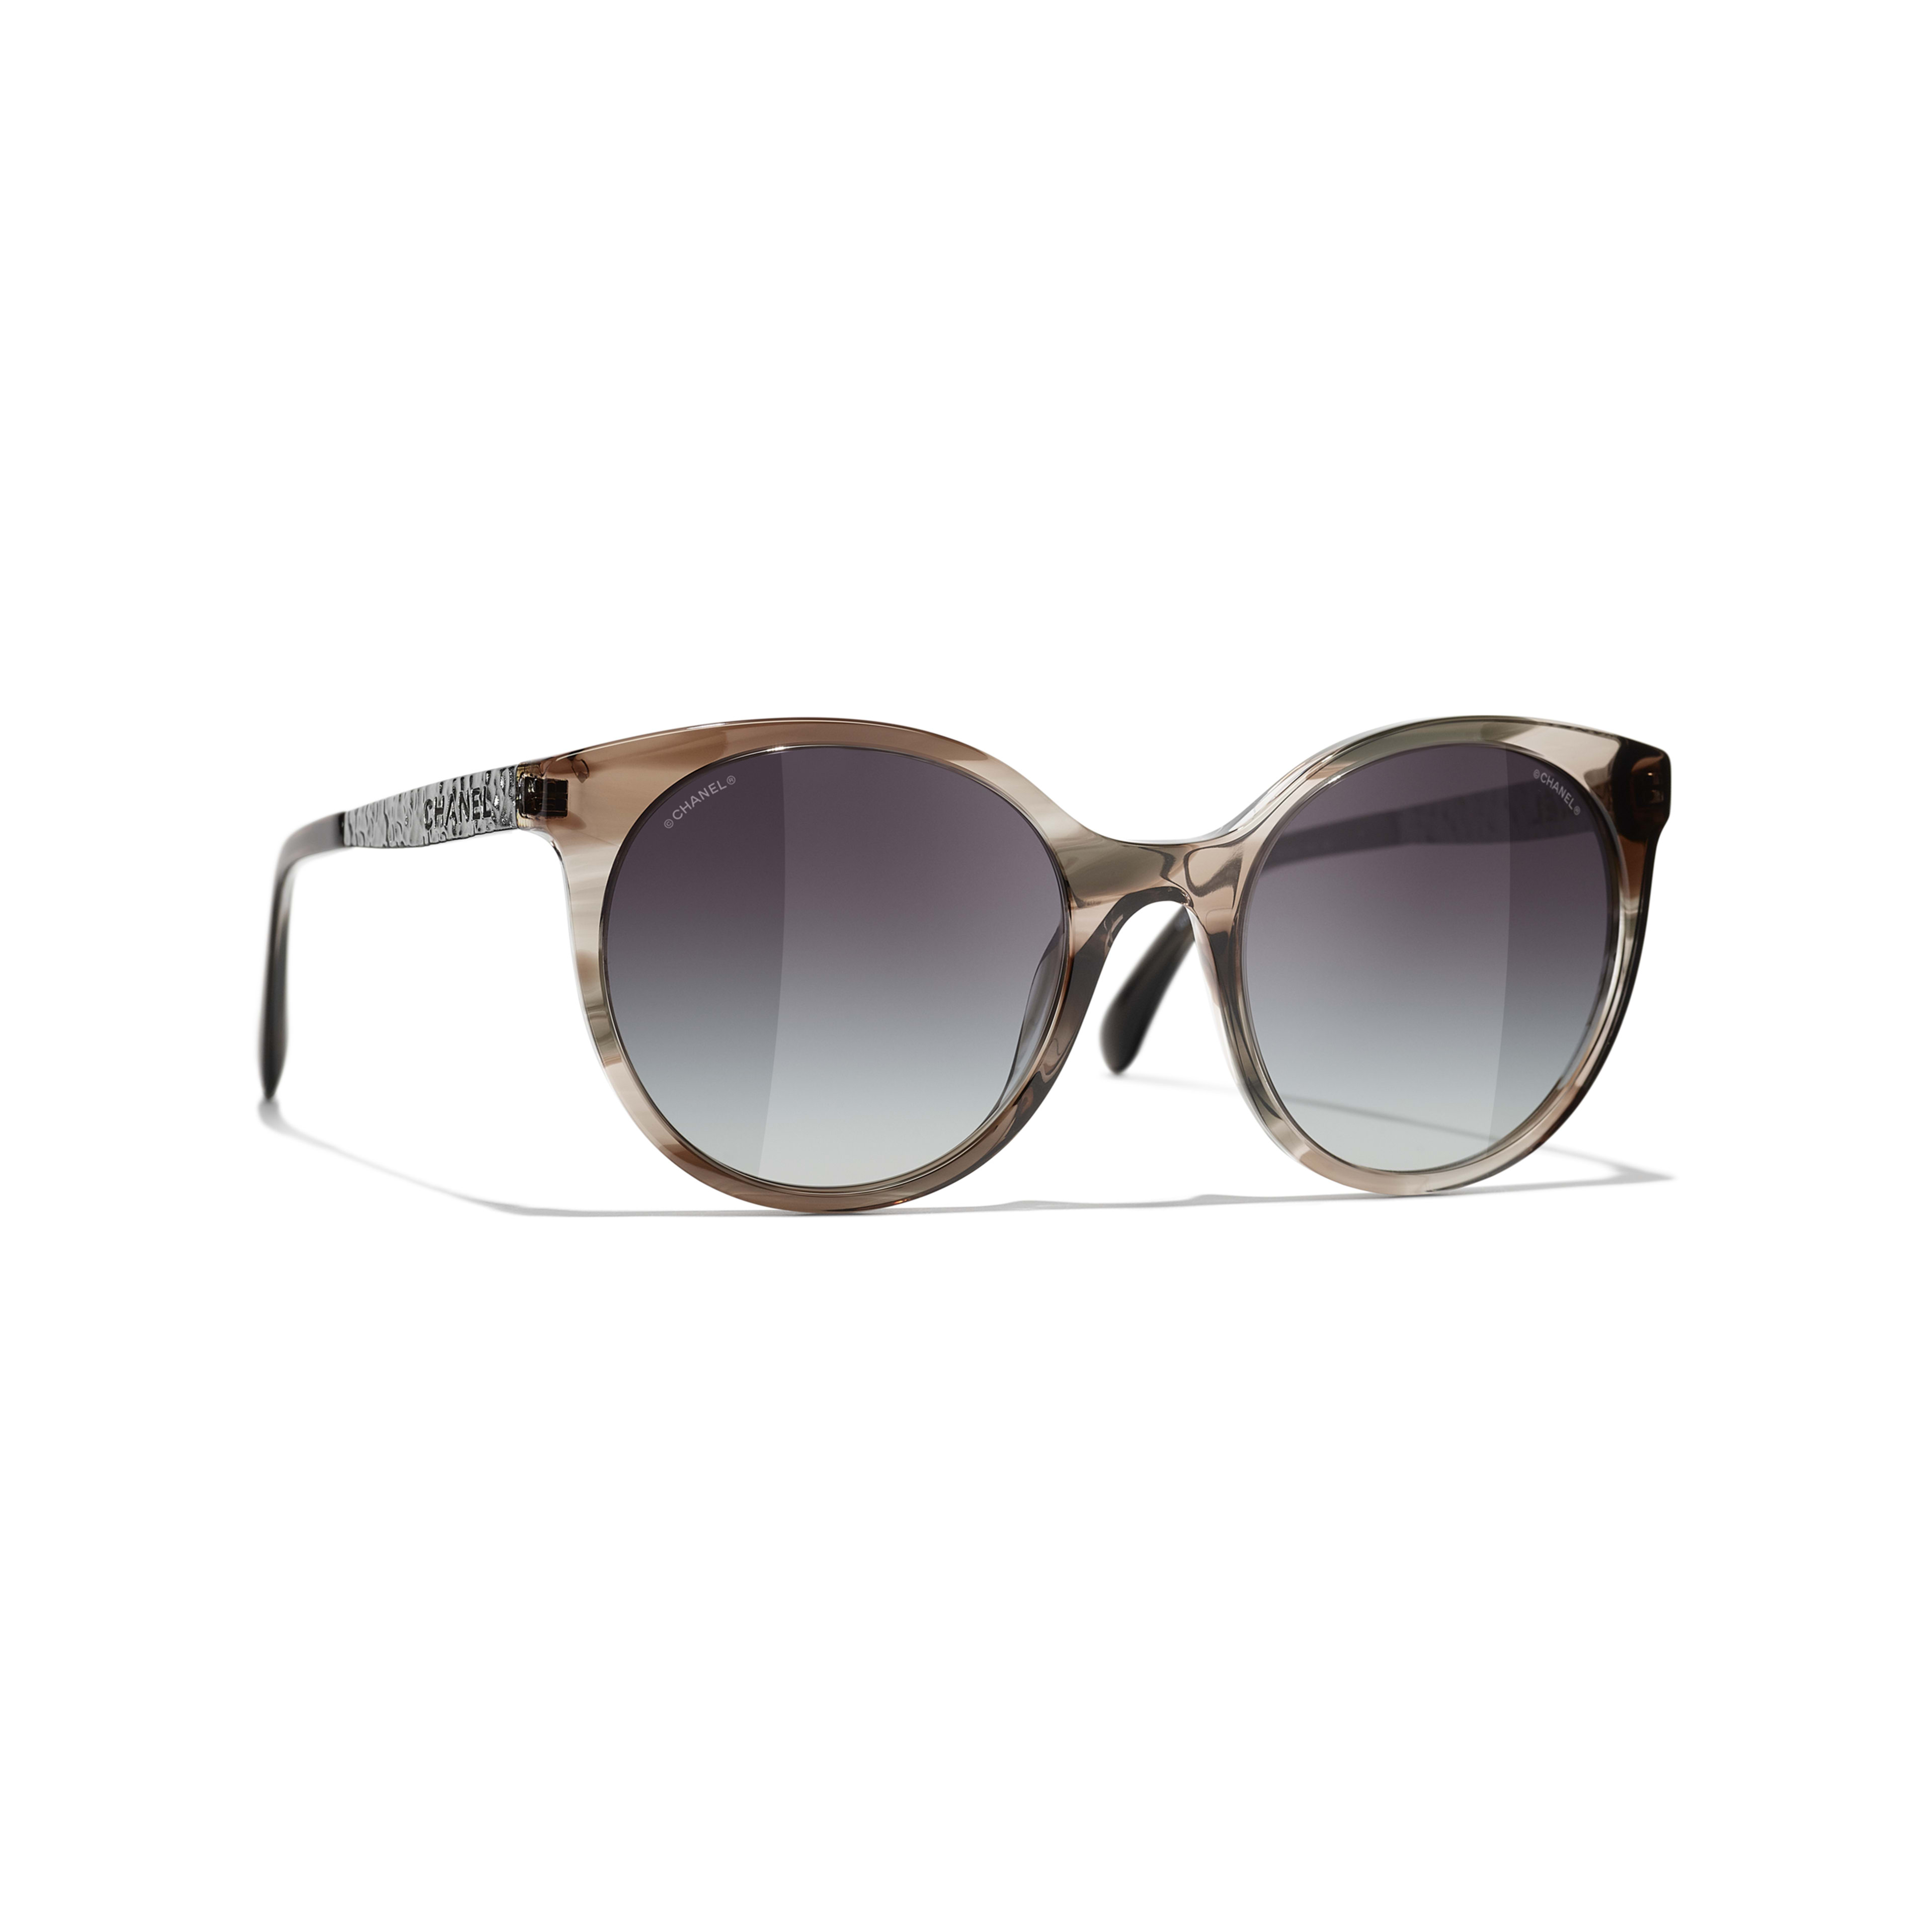 Pantos Sunglasses - Grey - Acetate & Metal - CHANEL - Default view - see standard sized version